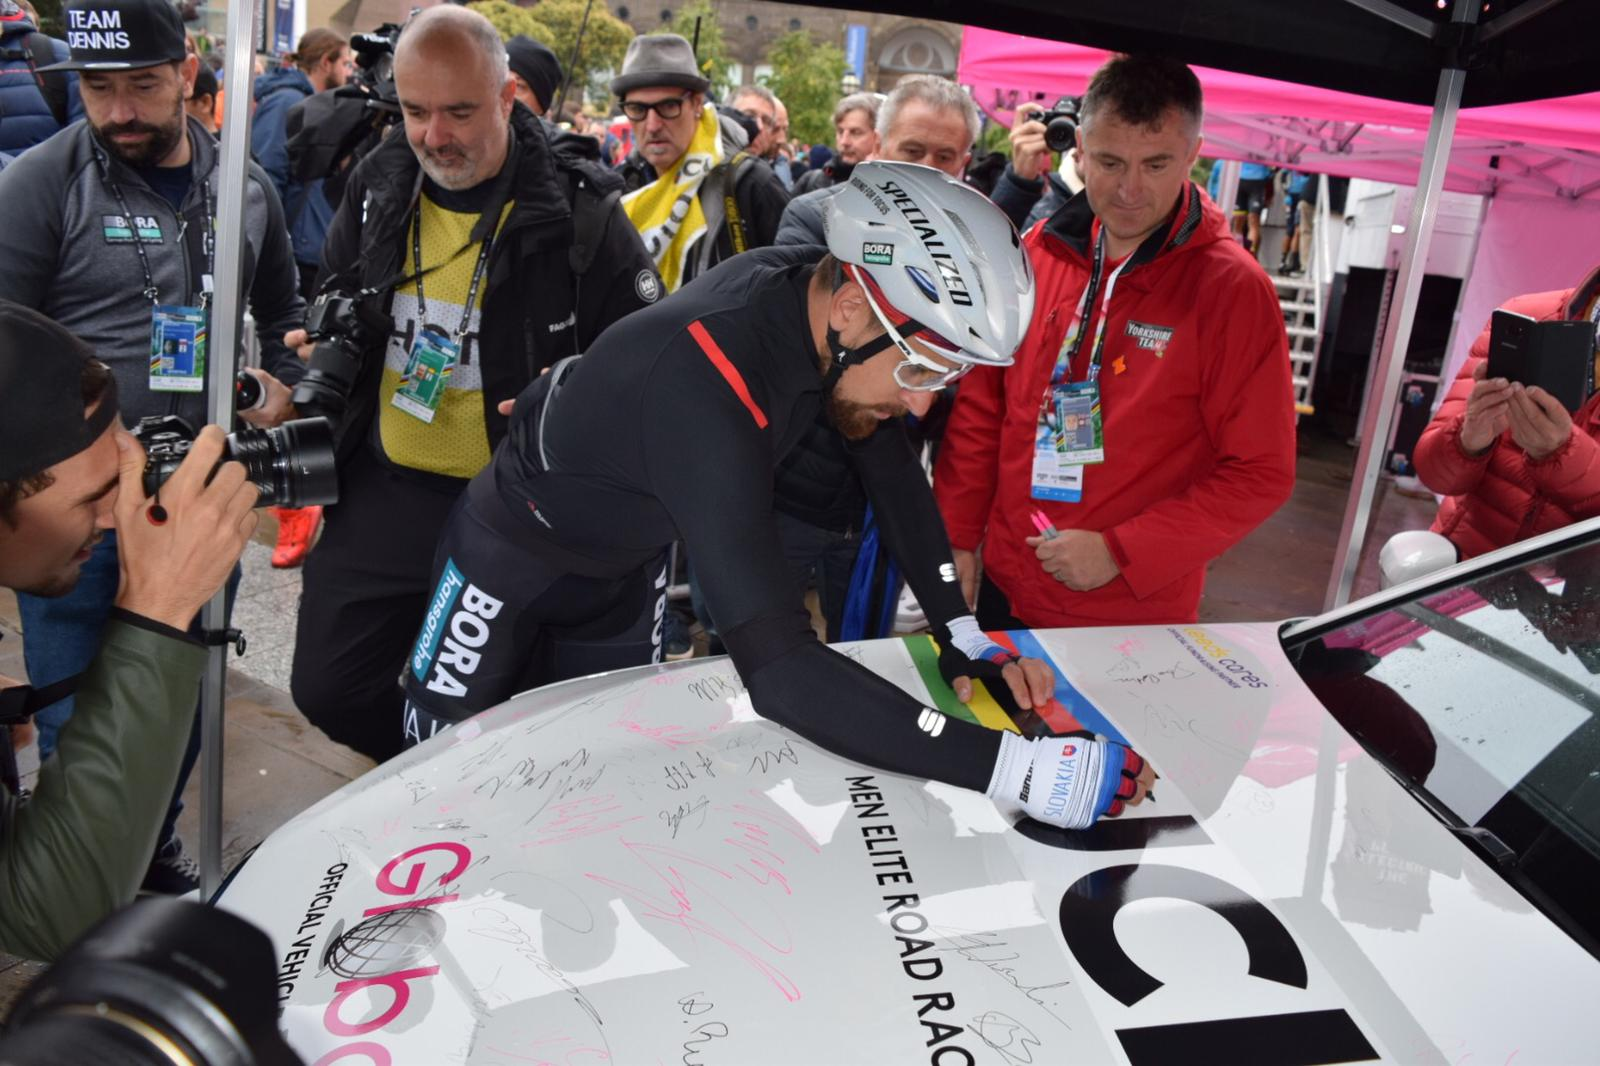 Peter Sagan autographs a race car